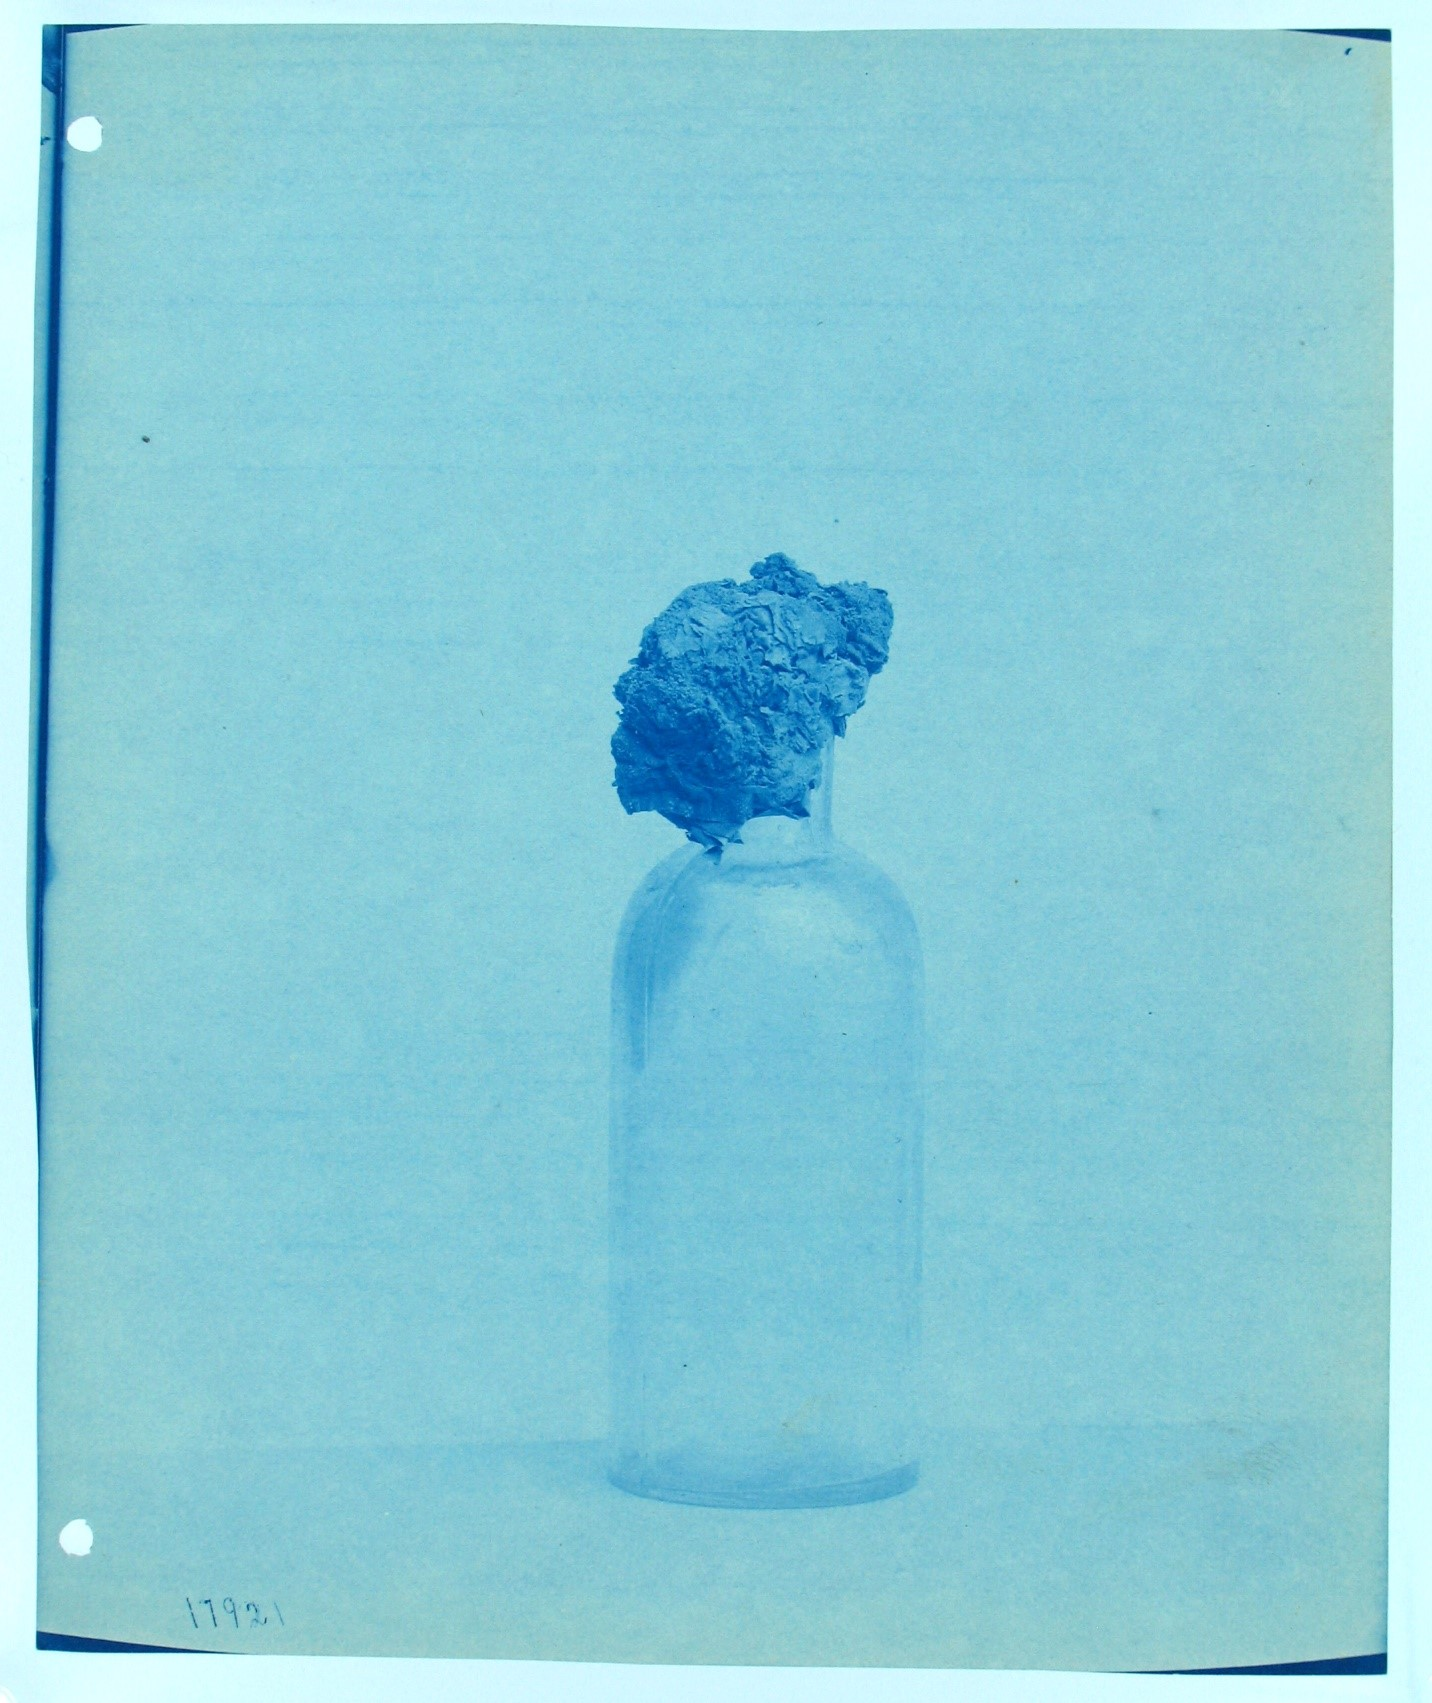 <p>Untitled, 1890, cyanotype, courtesy: Smithsonian Institution Archives</p>